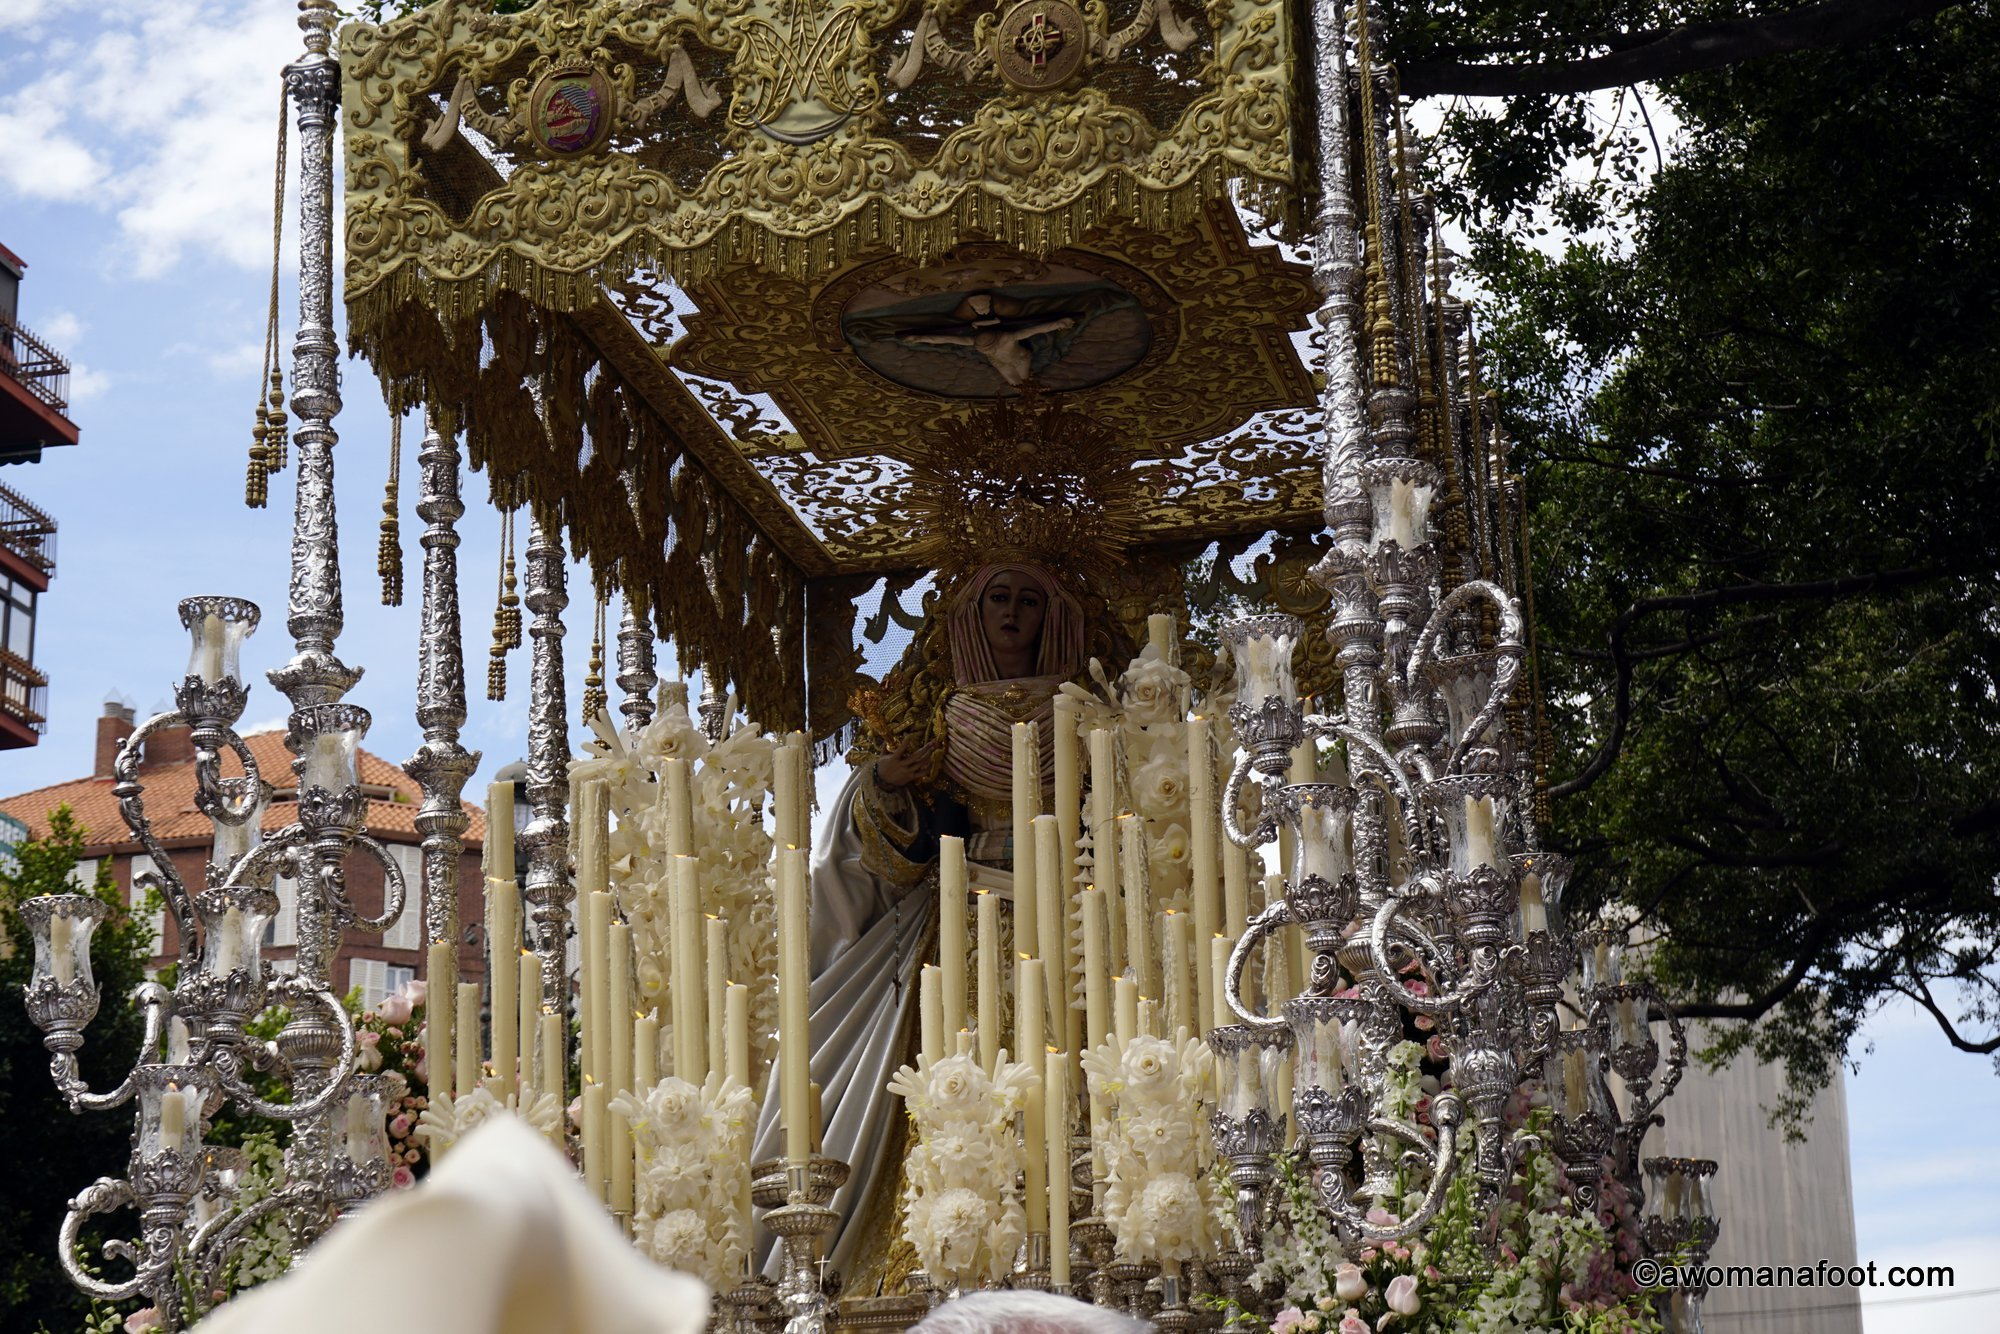 Easter is the perfect time to visit Spain - experience the uniquely Spanish traditions during the Semana Santa - Holy Week preceding the Catholic holiday of Easter. Awomanafoot.com   #Spain   #SemanaSanta   #Malaga   #Easter   #CultureTravel   #EuropeanTravel   What to do in Spain   Best time to go to Spain   Easter Celebrations   Easter in Malaga   Malaga travel   Holiday Traditions   Catholic Traditions   #CityGuide   #TravelDestinations